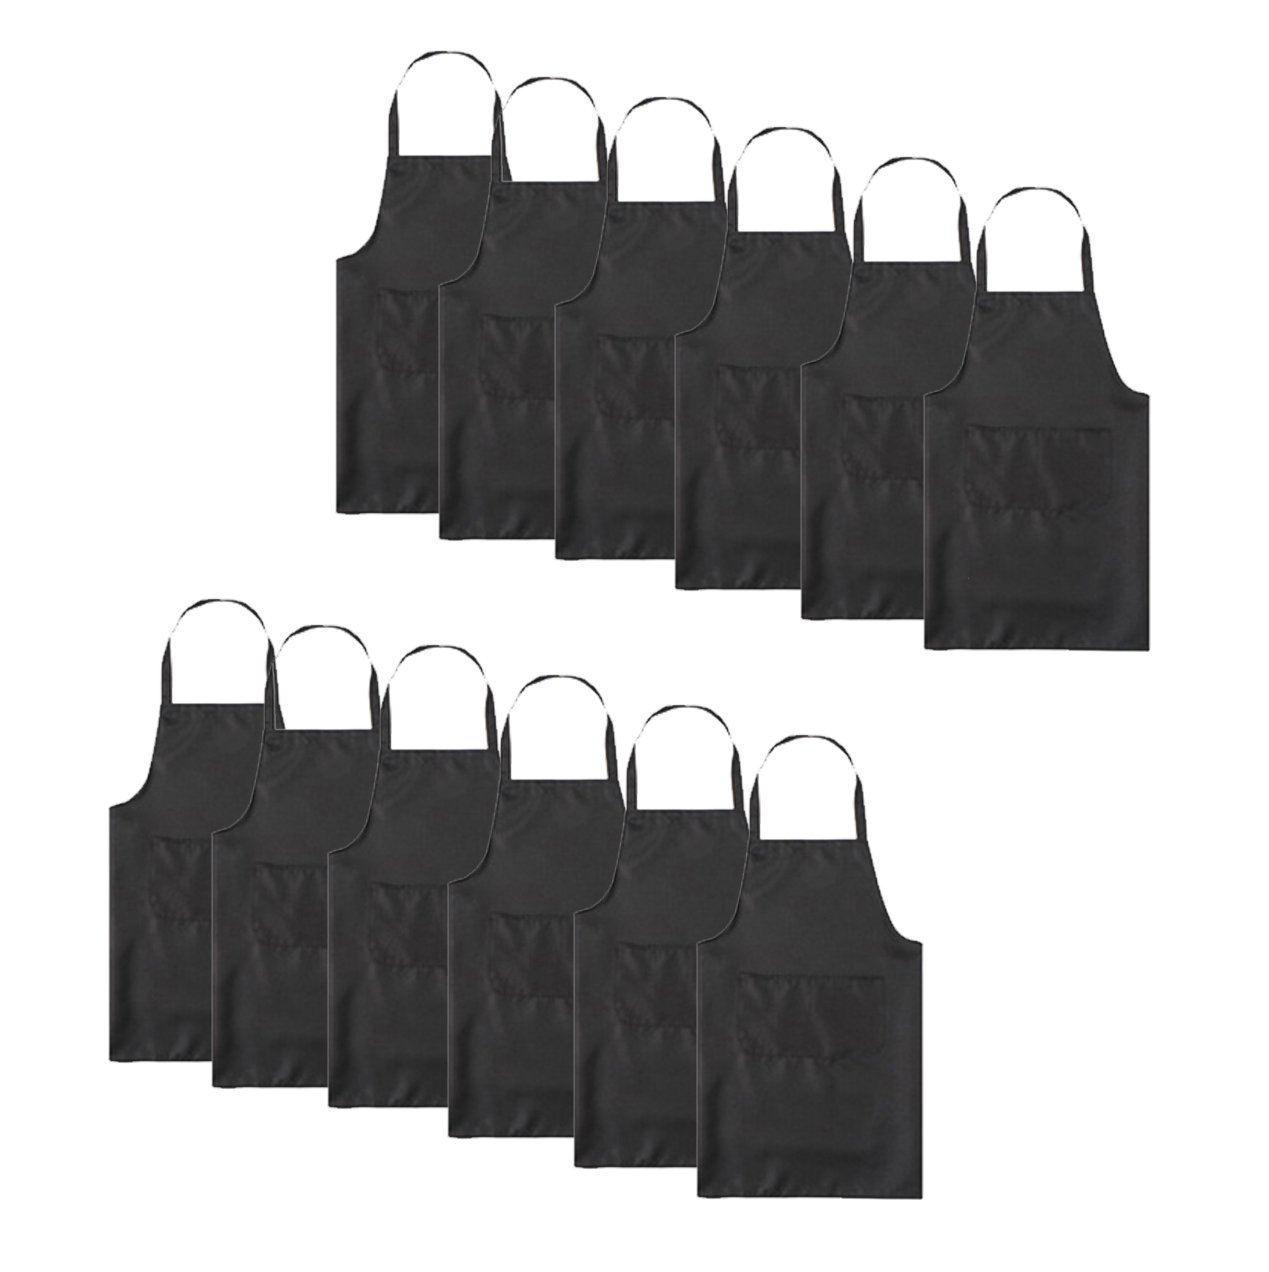 TSD STORY Total 12 PCS Plain Color Bib Apron Adult with 2 Front Pocket (Black) TT0001